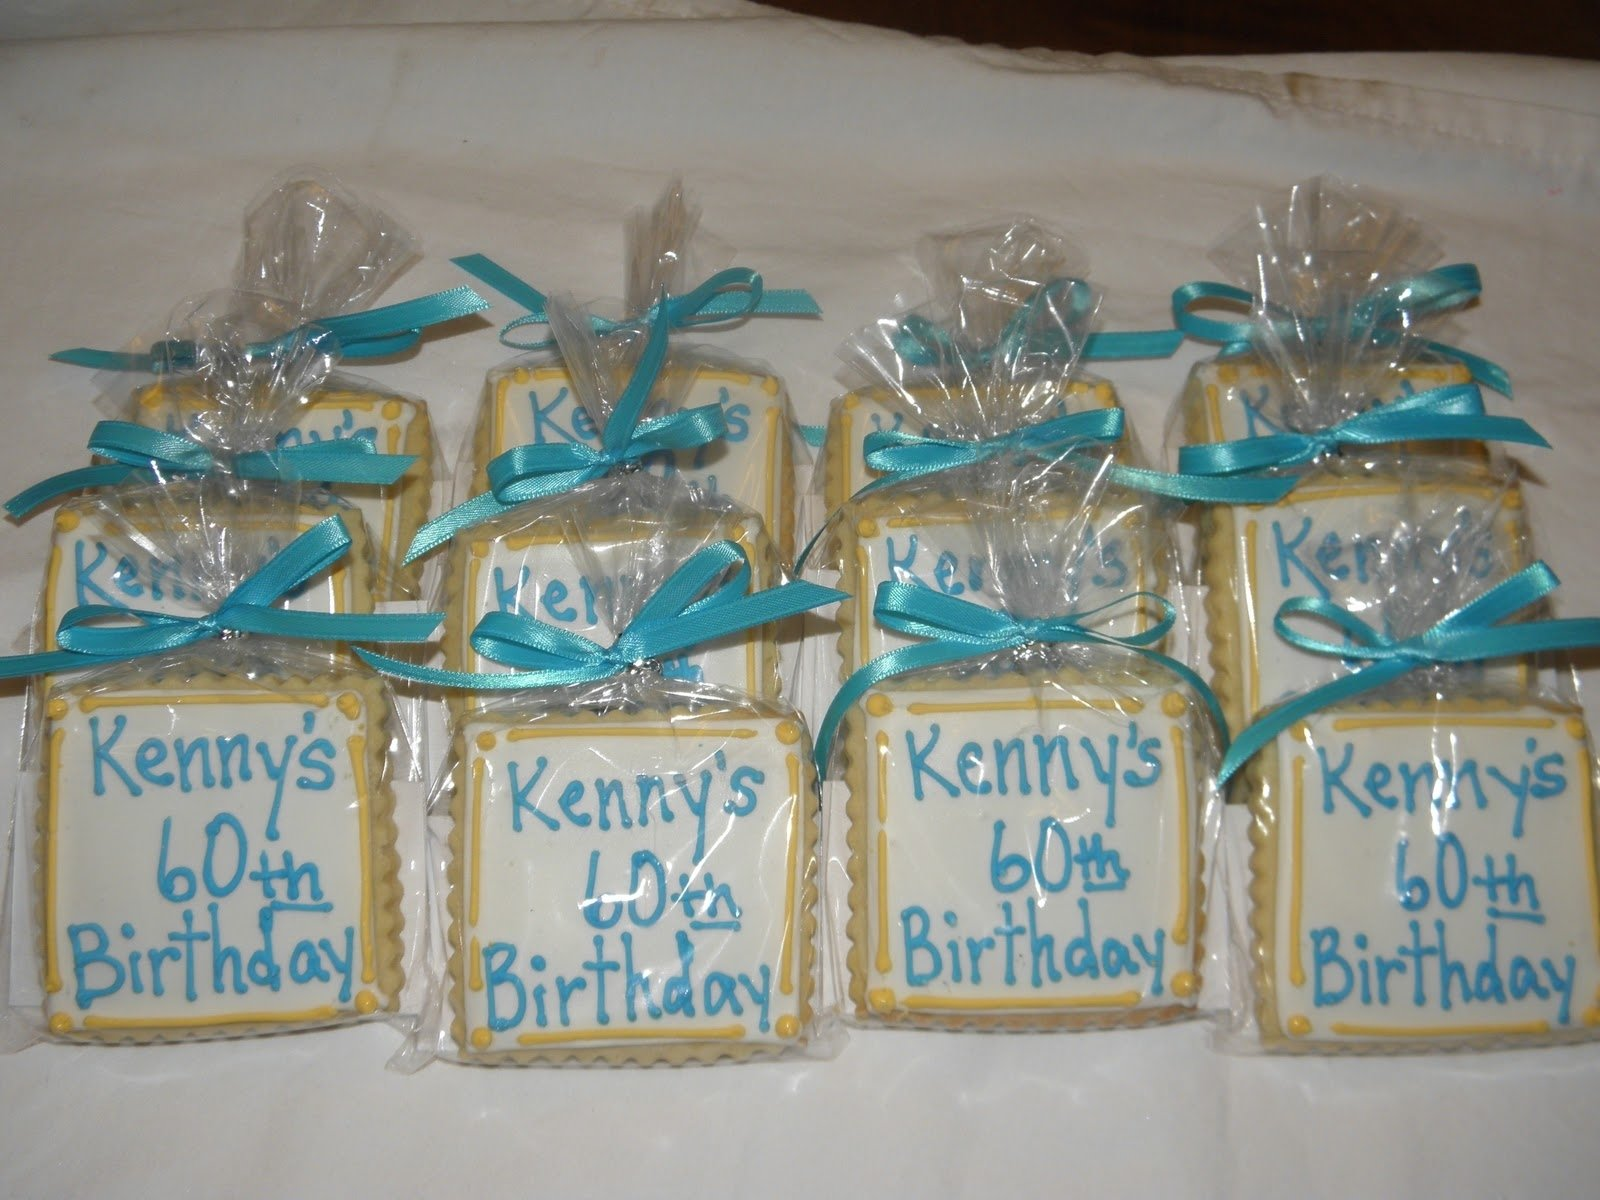 10 Gorgeous 60Th Birthday Party Favors Ideas 60th birthday party decorations ebay criolla brithday wedding 2020